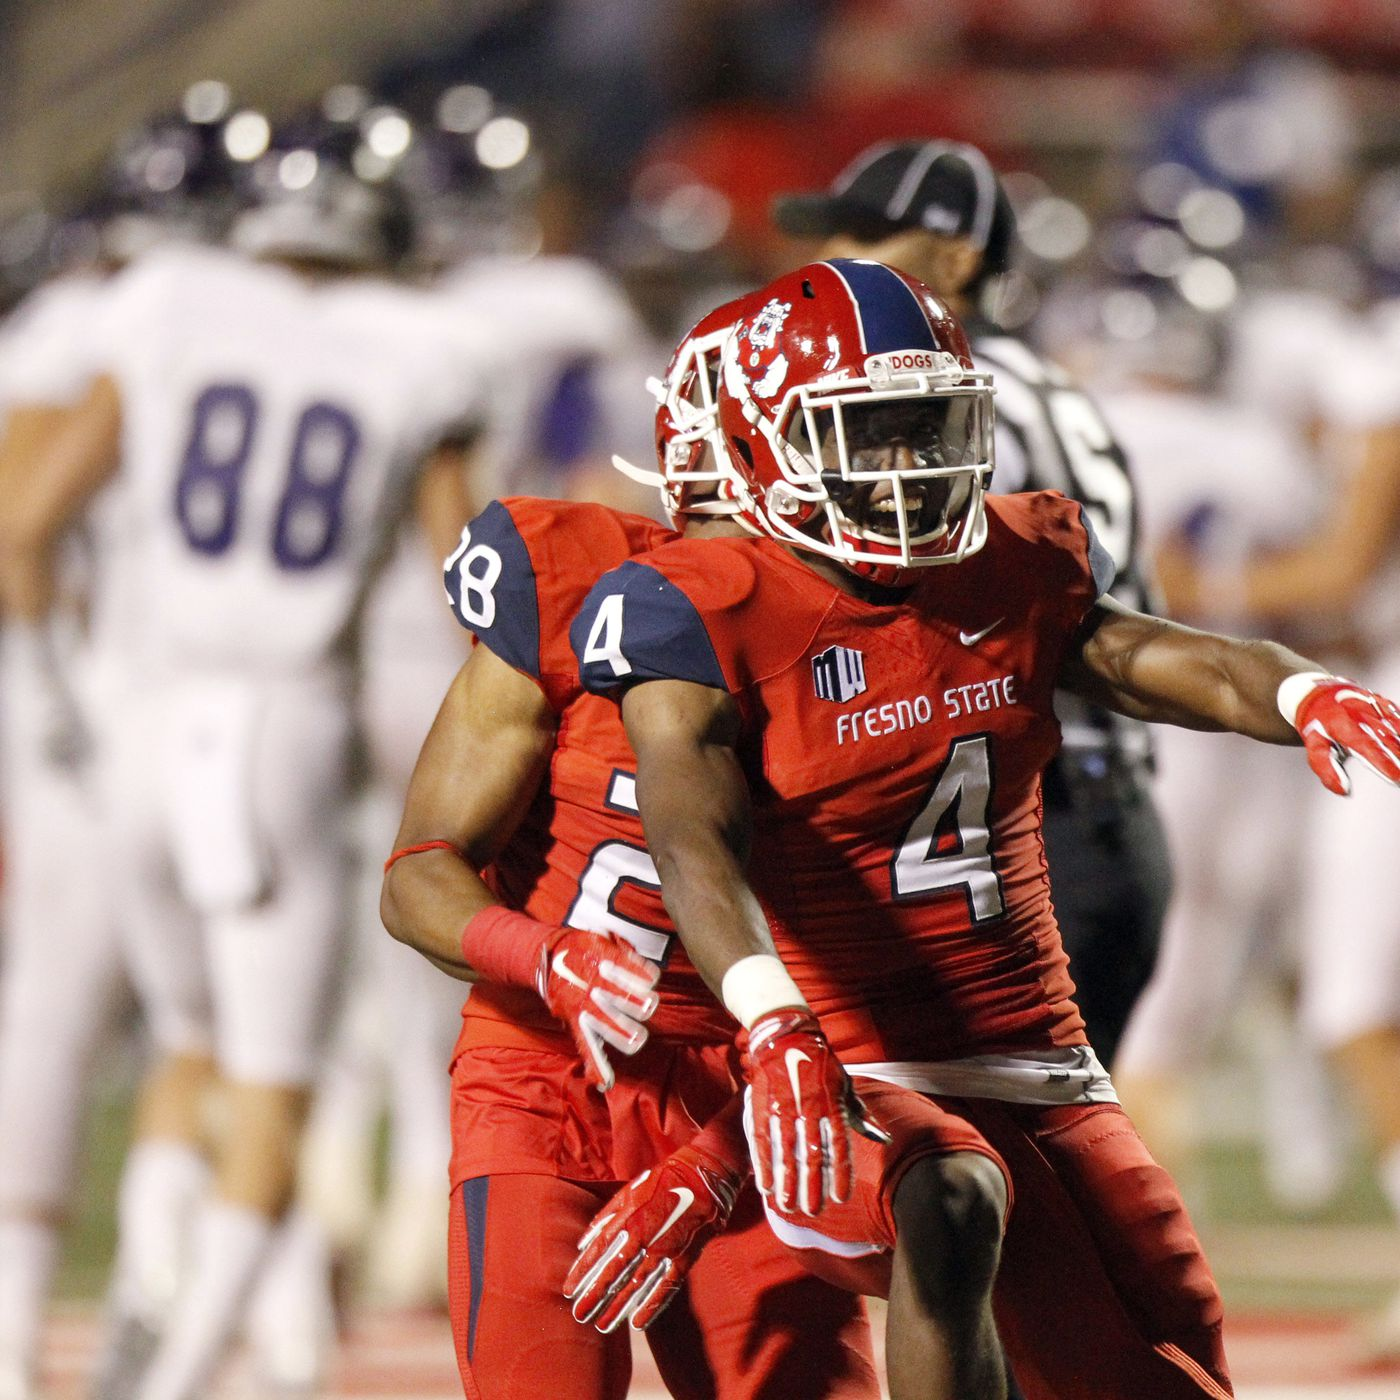 Halloween 2020 Edwards Fresno Chiefs add Fresno State CB Shannon Edwards to roster after